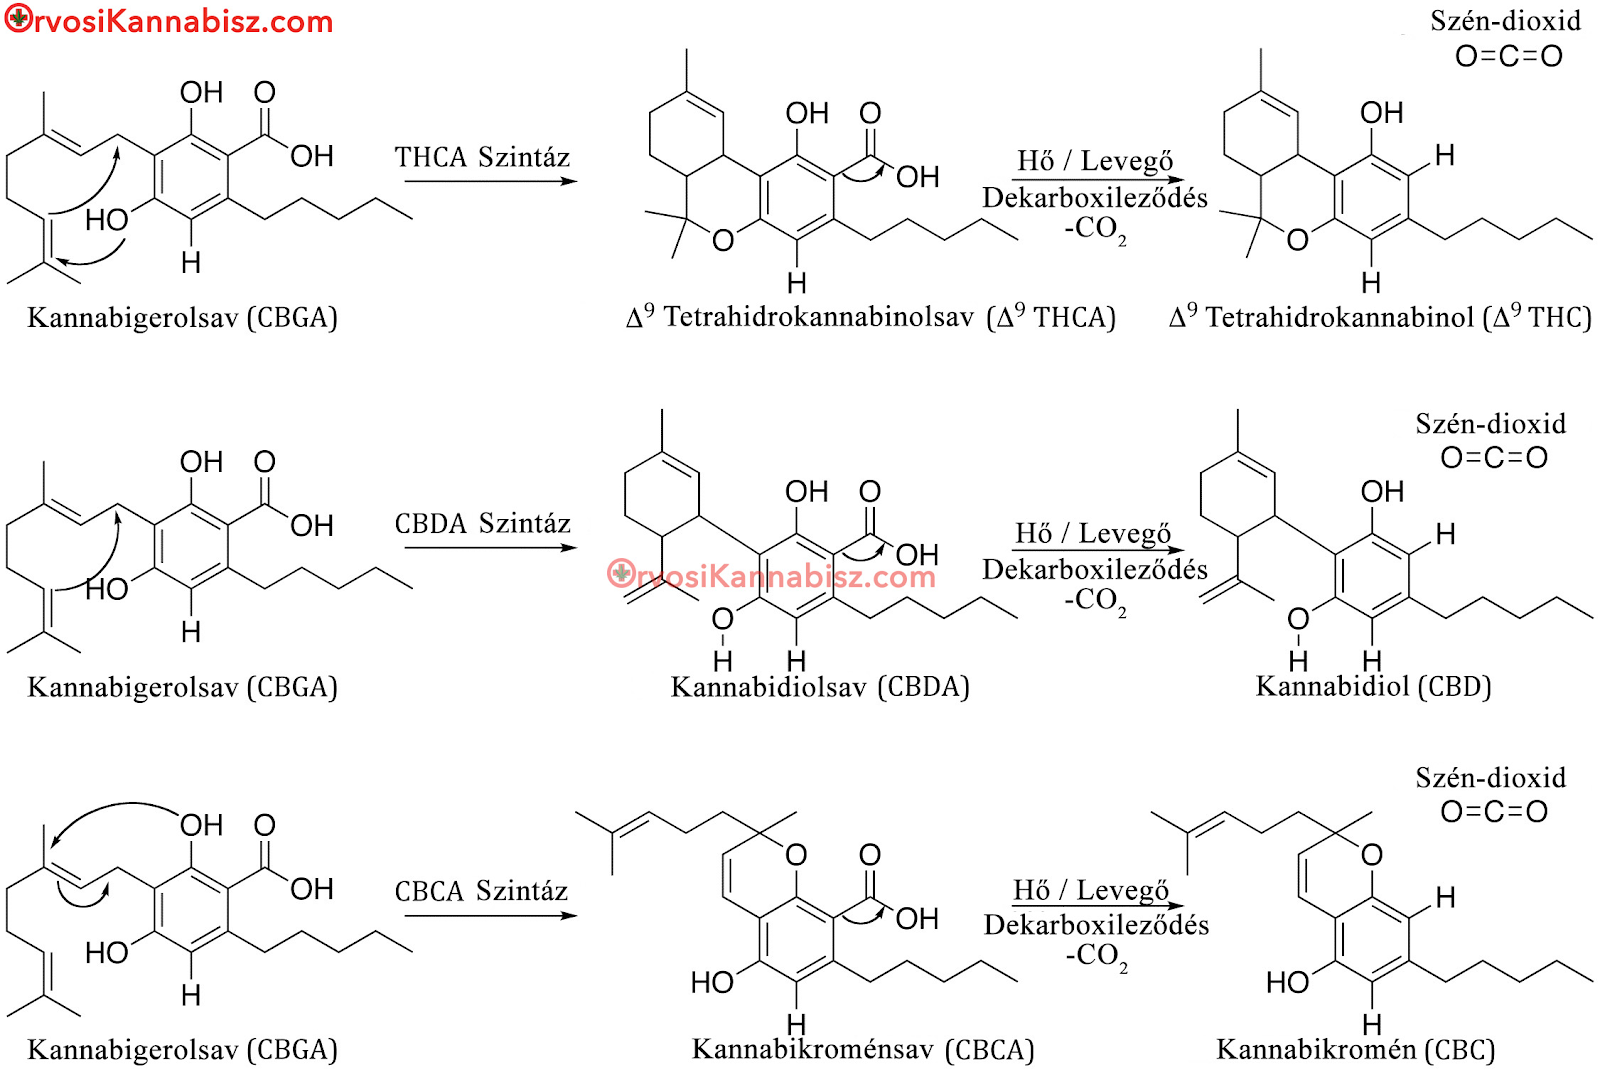 synthesis of THC, CBG and more